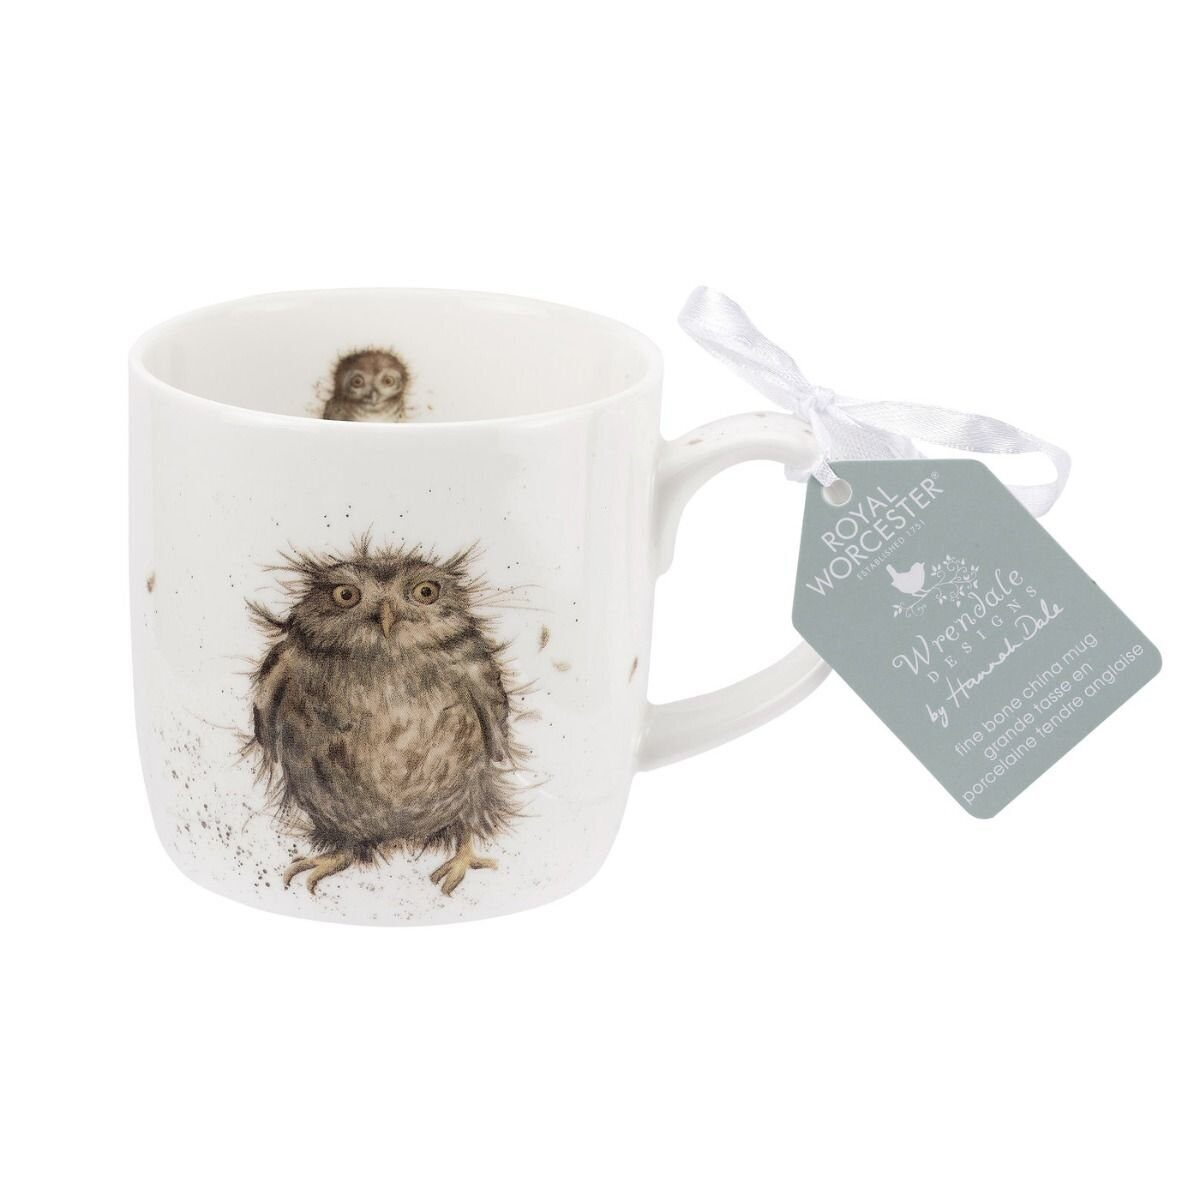 Royal Worcester Wrendale Designs What a Hoot Owl Fine Bone China Mug);